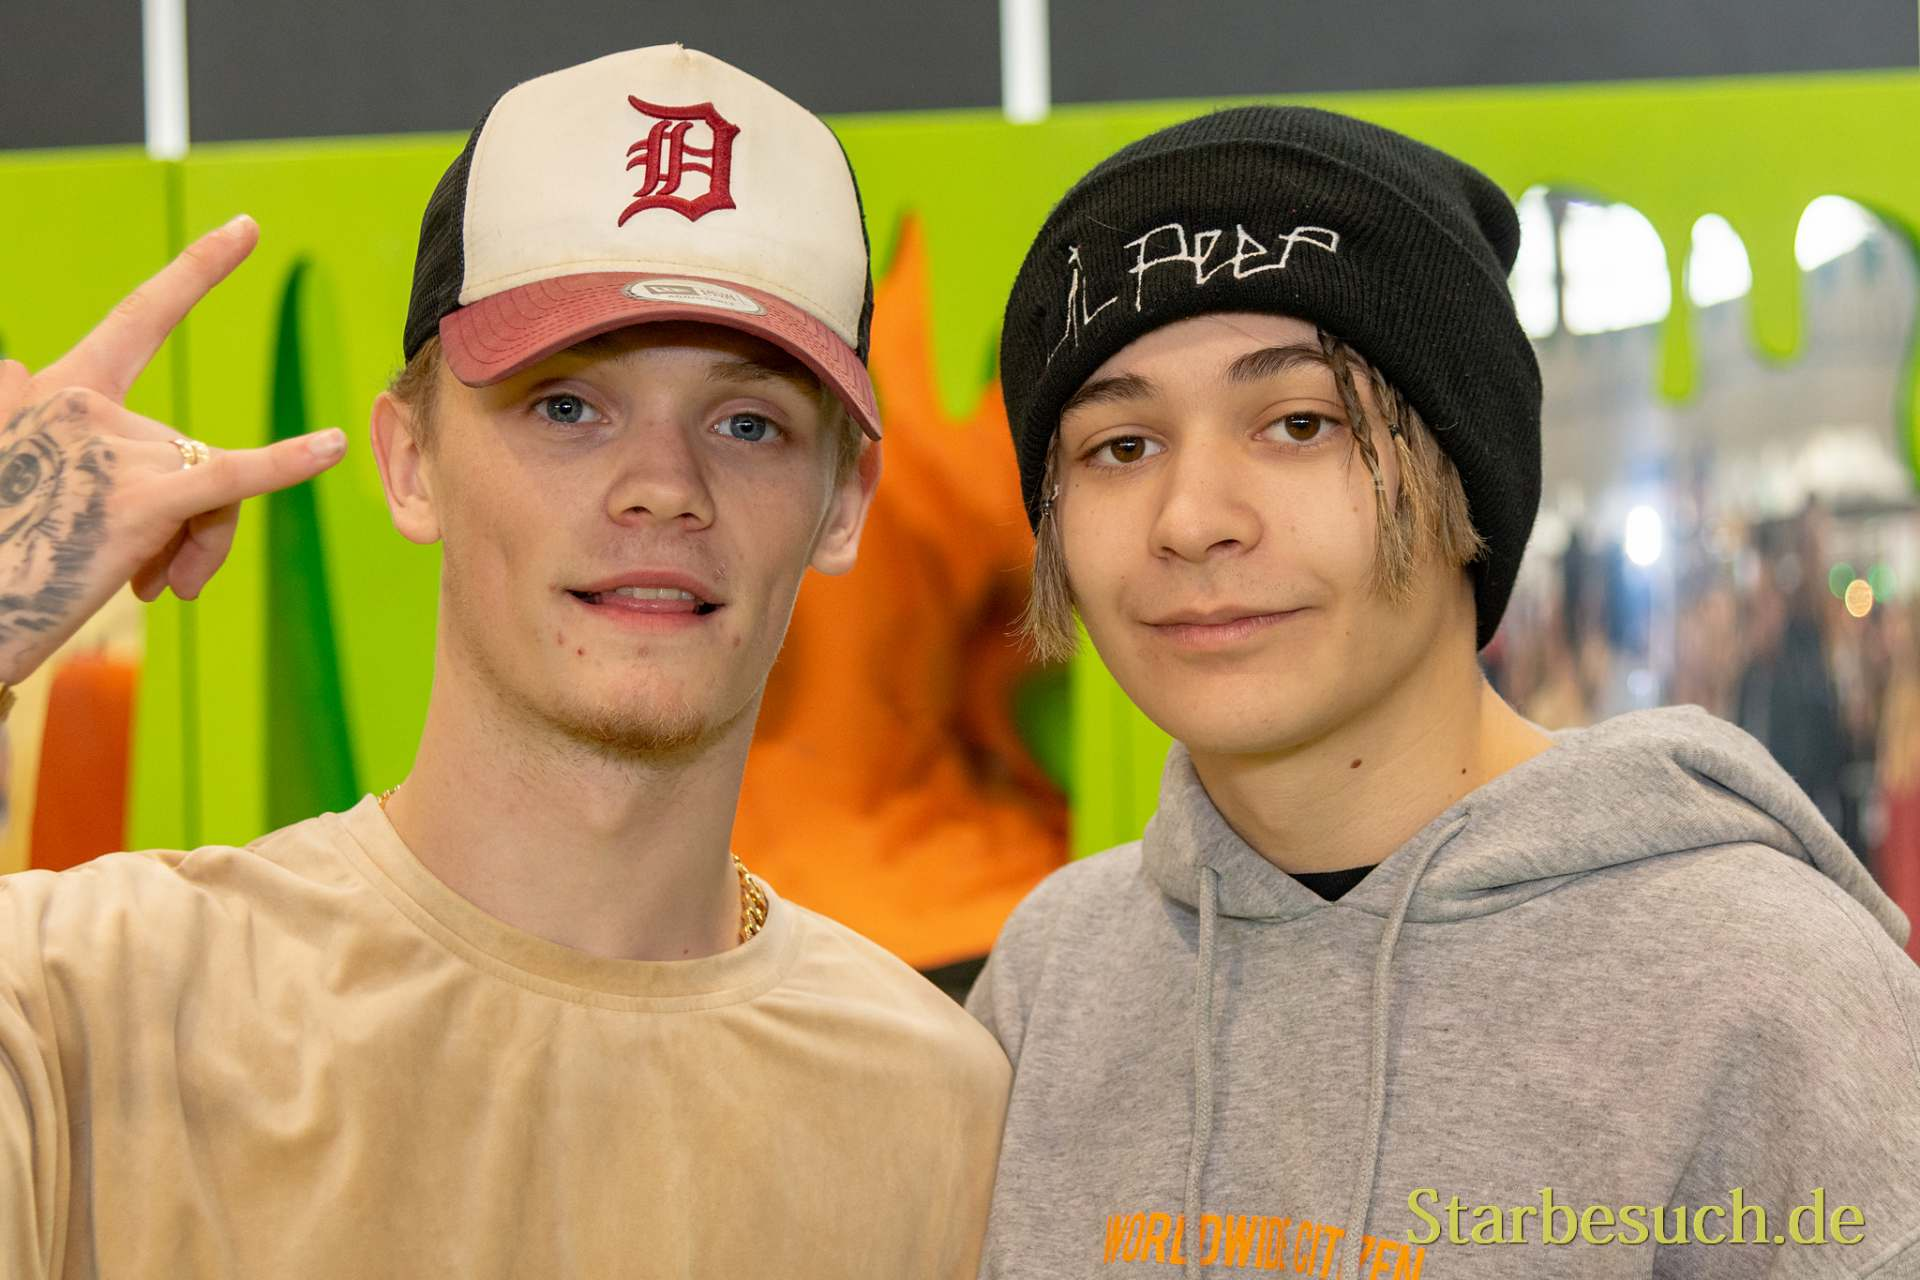 DORTMUND, GERMANY - December 1st 2018: Bars & Melody at German Comic Con Dortmund, a two day fan convention